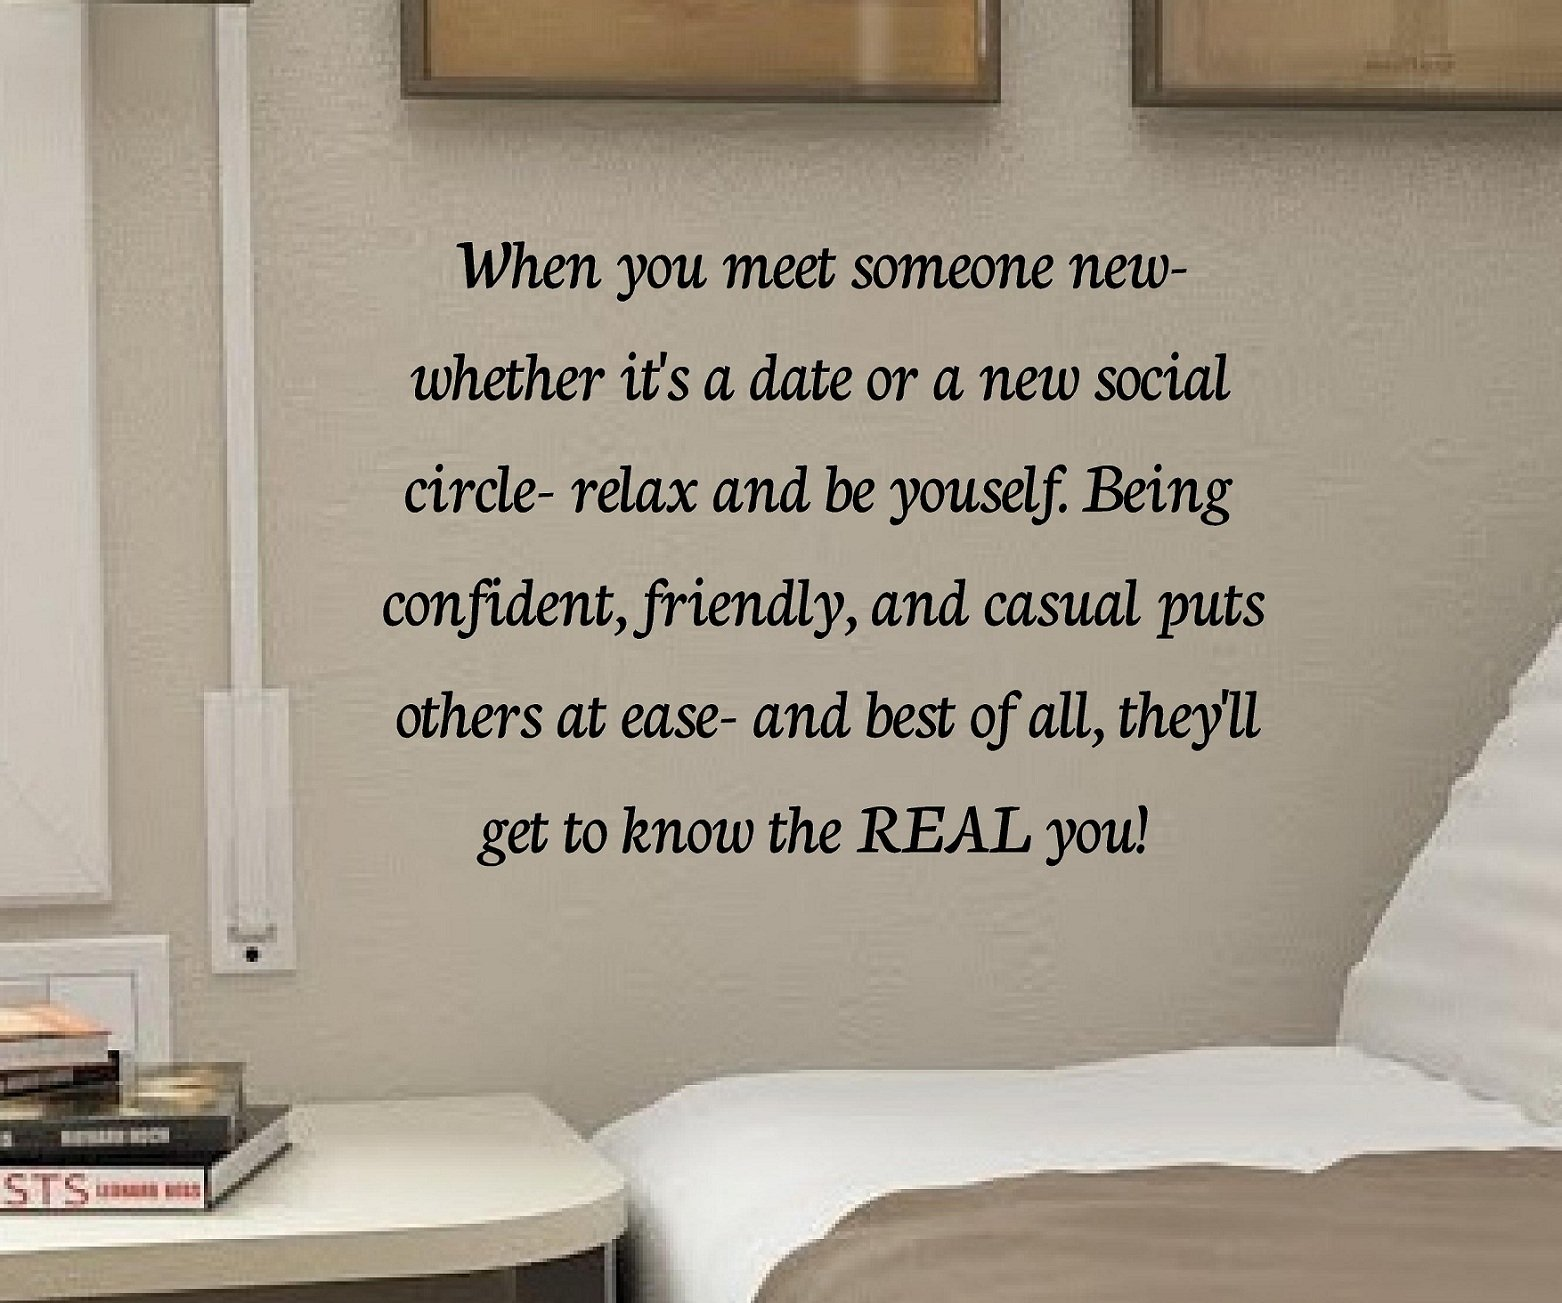 When You Meet Someone New Whether It's a Date or a New Social Circle-relax and Be Yourself. Being Confident, Friendly, and Casual Puts Others At Ease- And Best of All, They'll Get to Know the Real You! 22x16 Inches Vinyl Car Sticker Symbol Silhouette Keyp